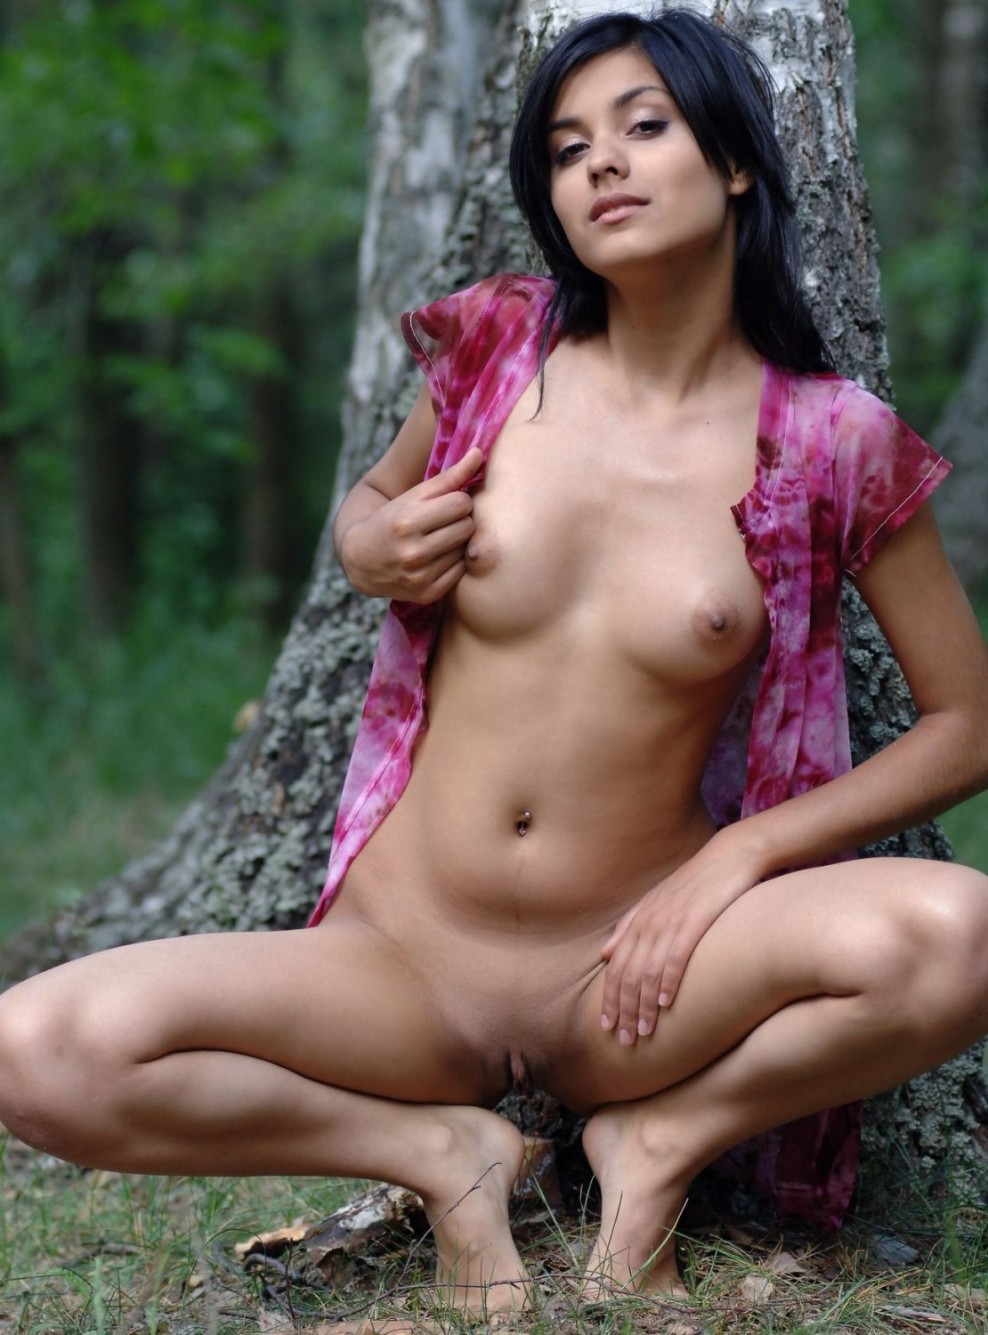 nudegirls belongs to pakistan